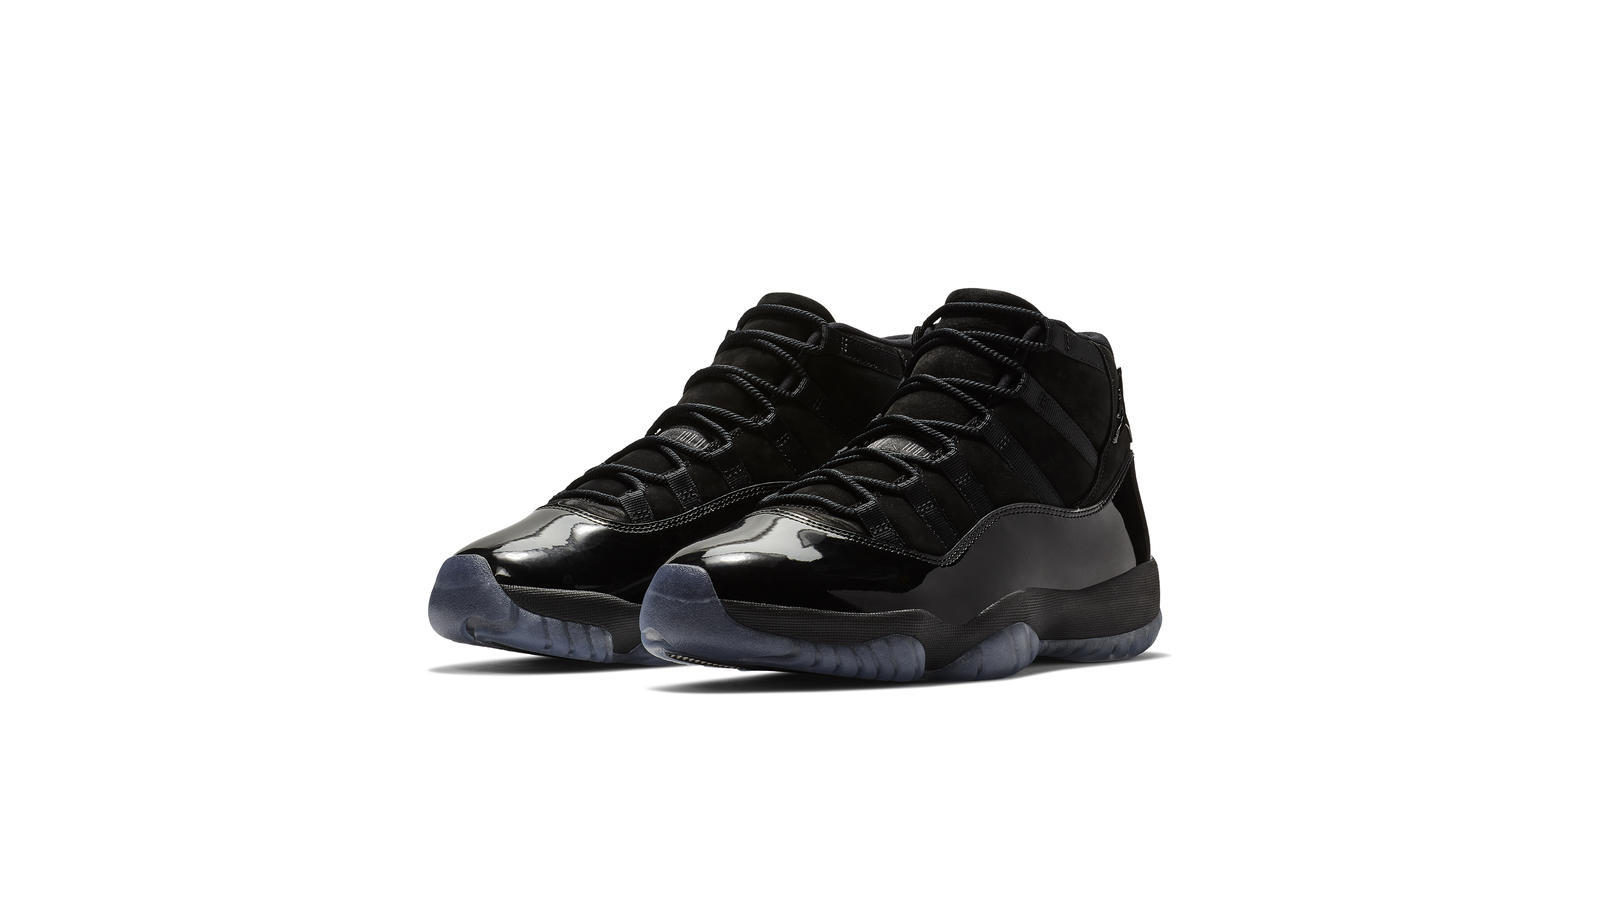 3729a0edddb Air Jordan XI Cap and Gown - Nike News